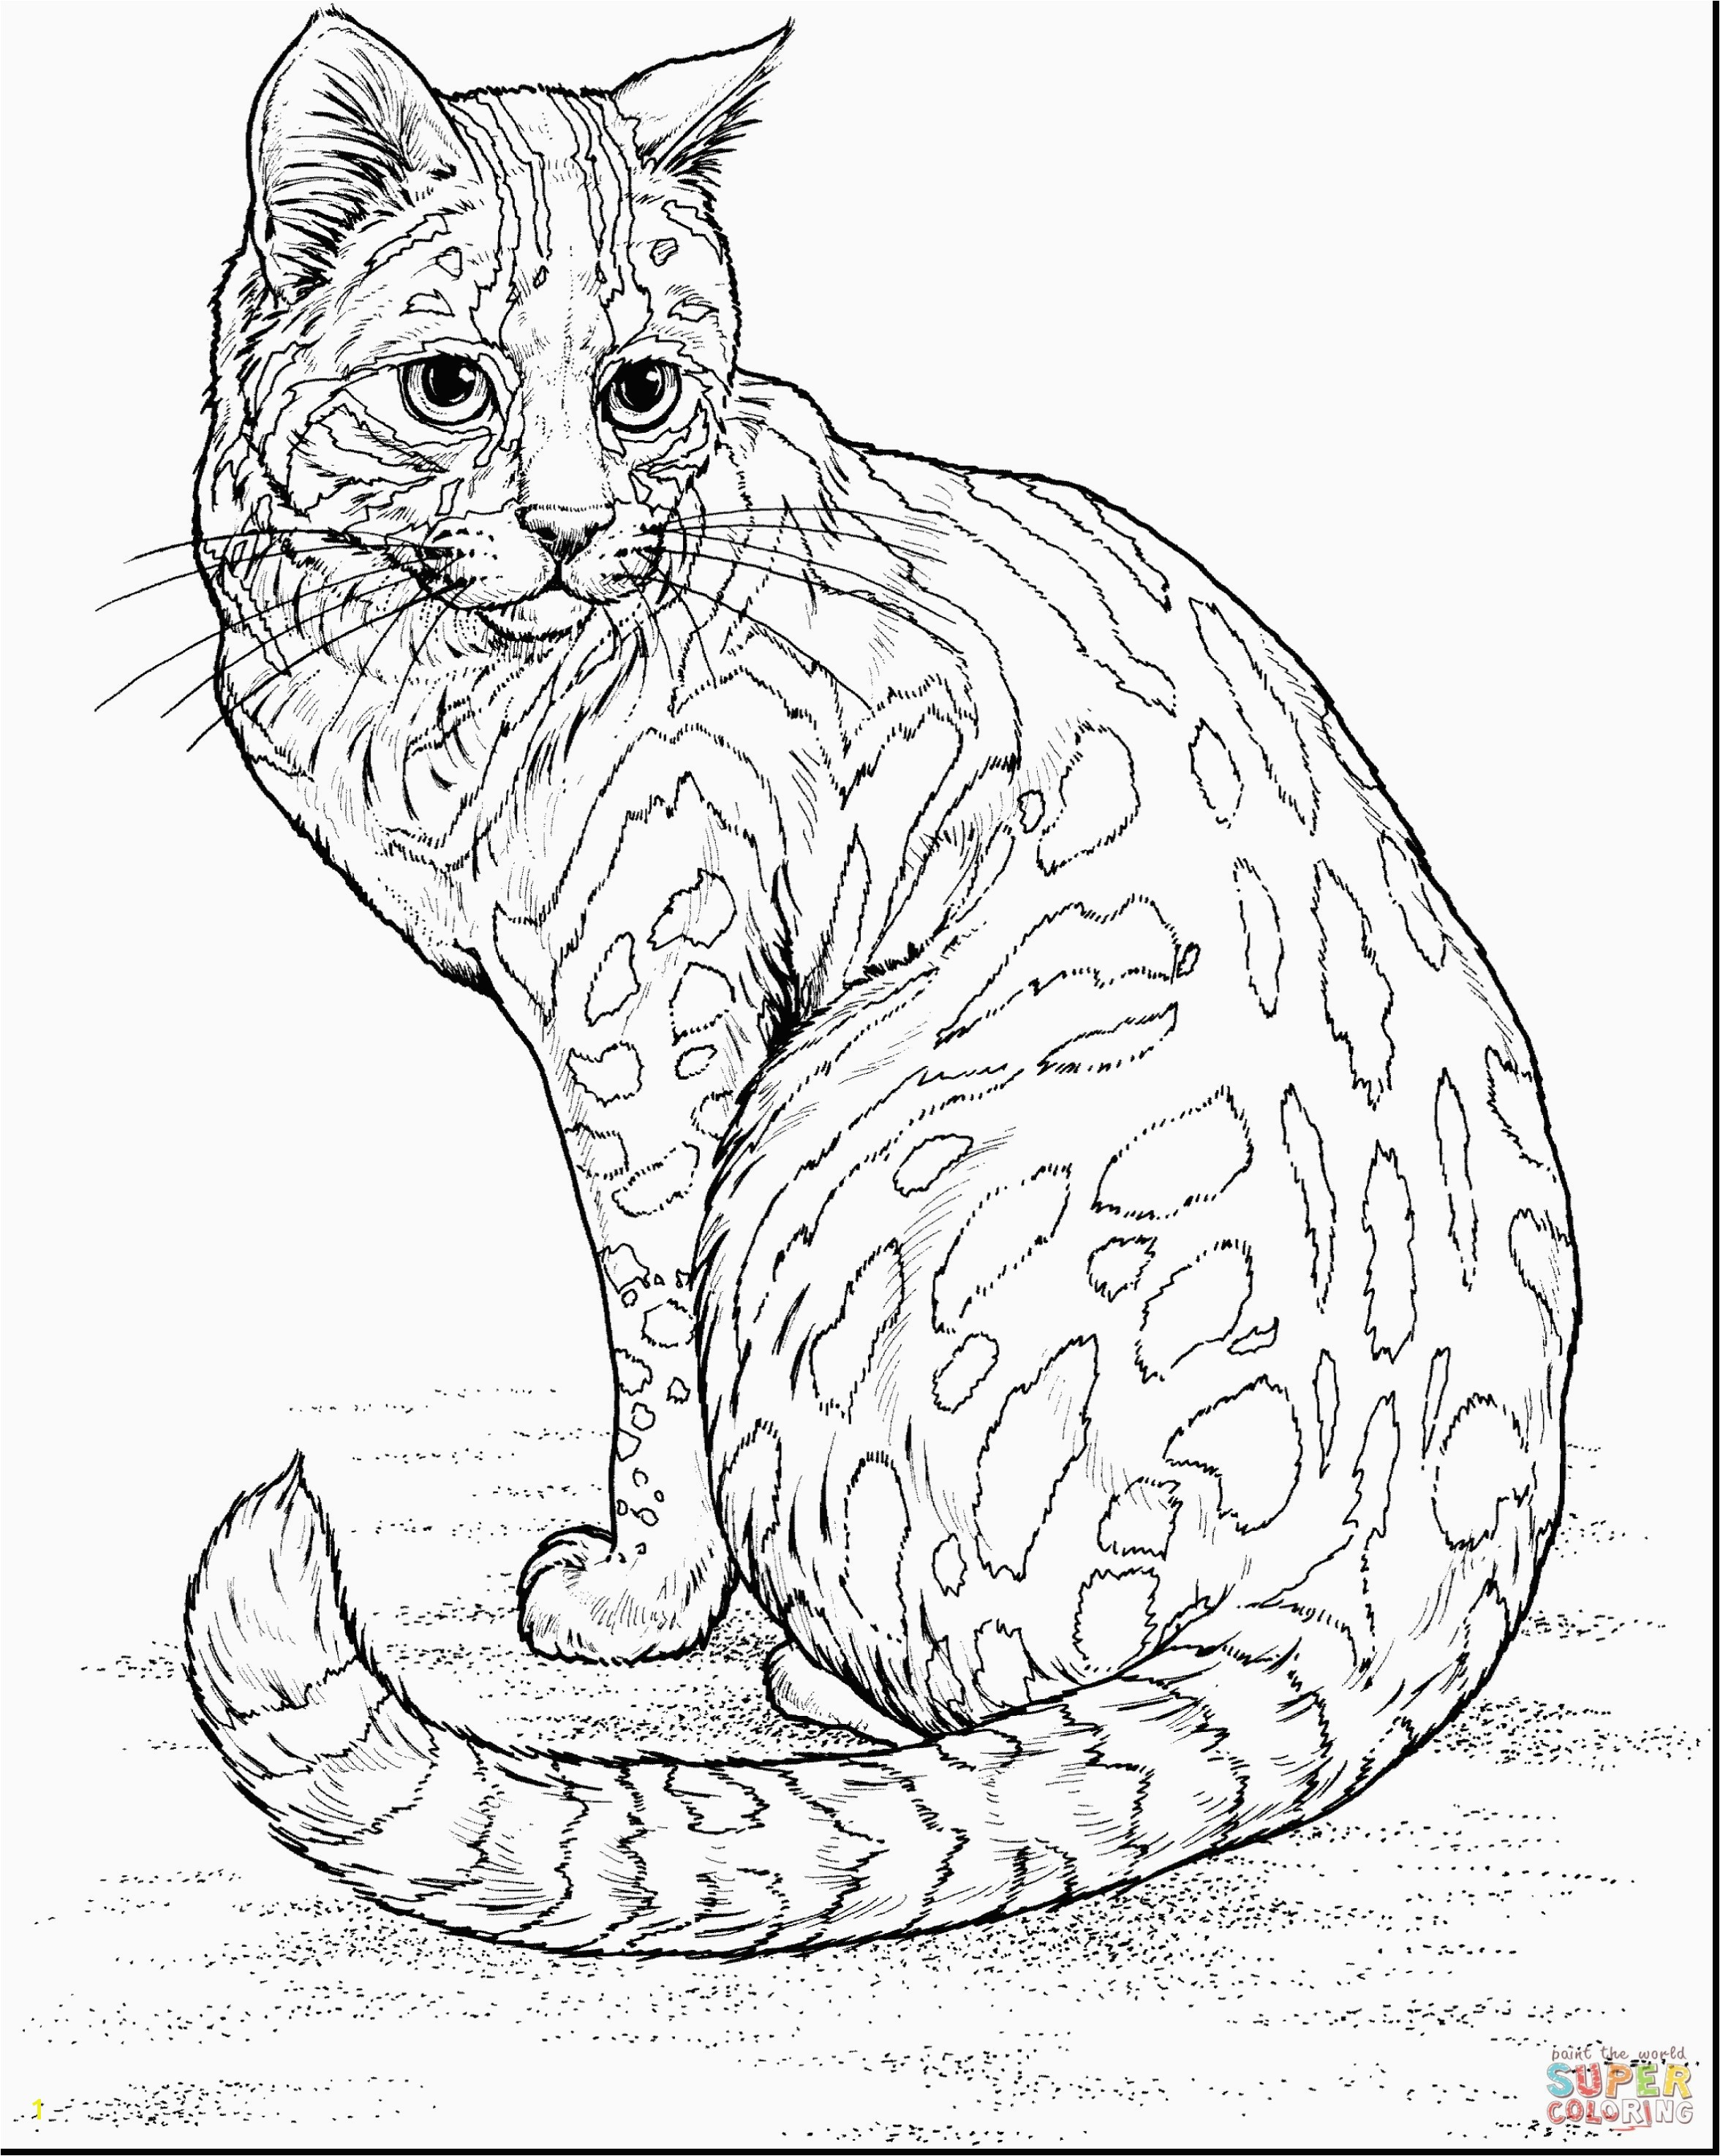 Coloring Pages Real Kittens Awesome Cute Cat Coloring Pages Inspirational Kitten Drawing at Getdrawings Gallery